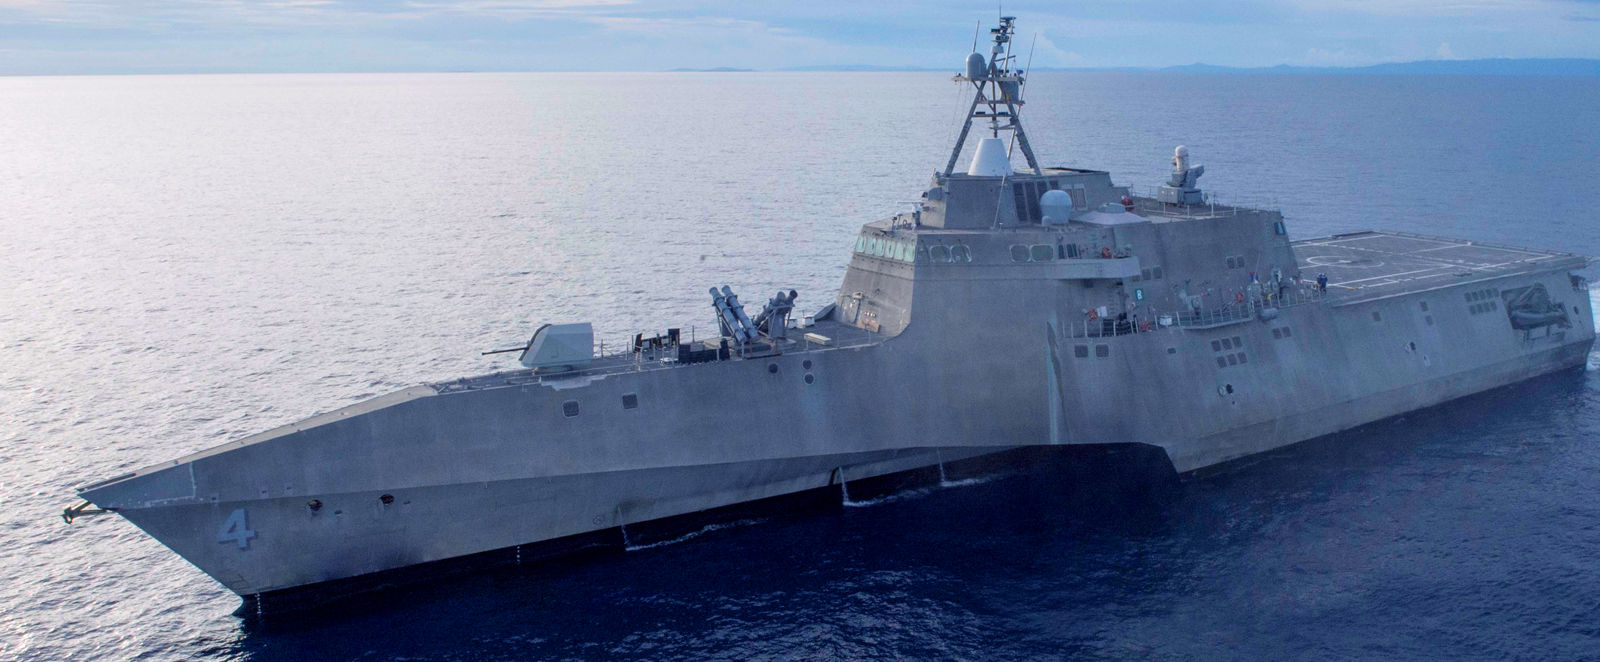 Independence-class littoral combat ship